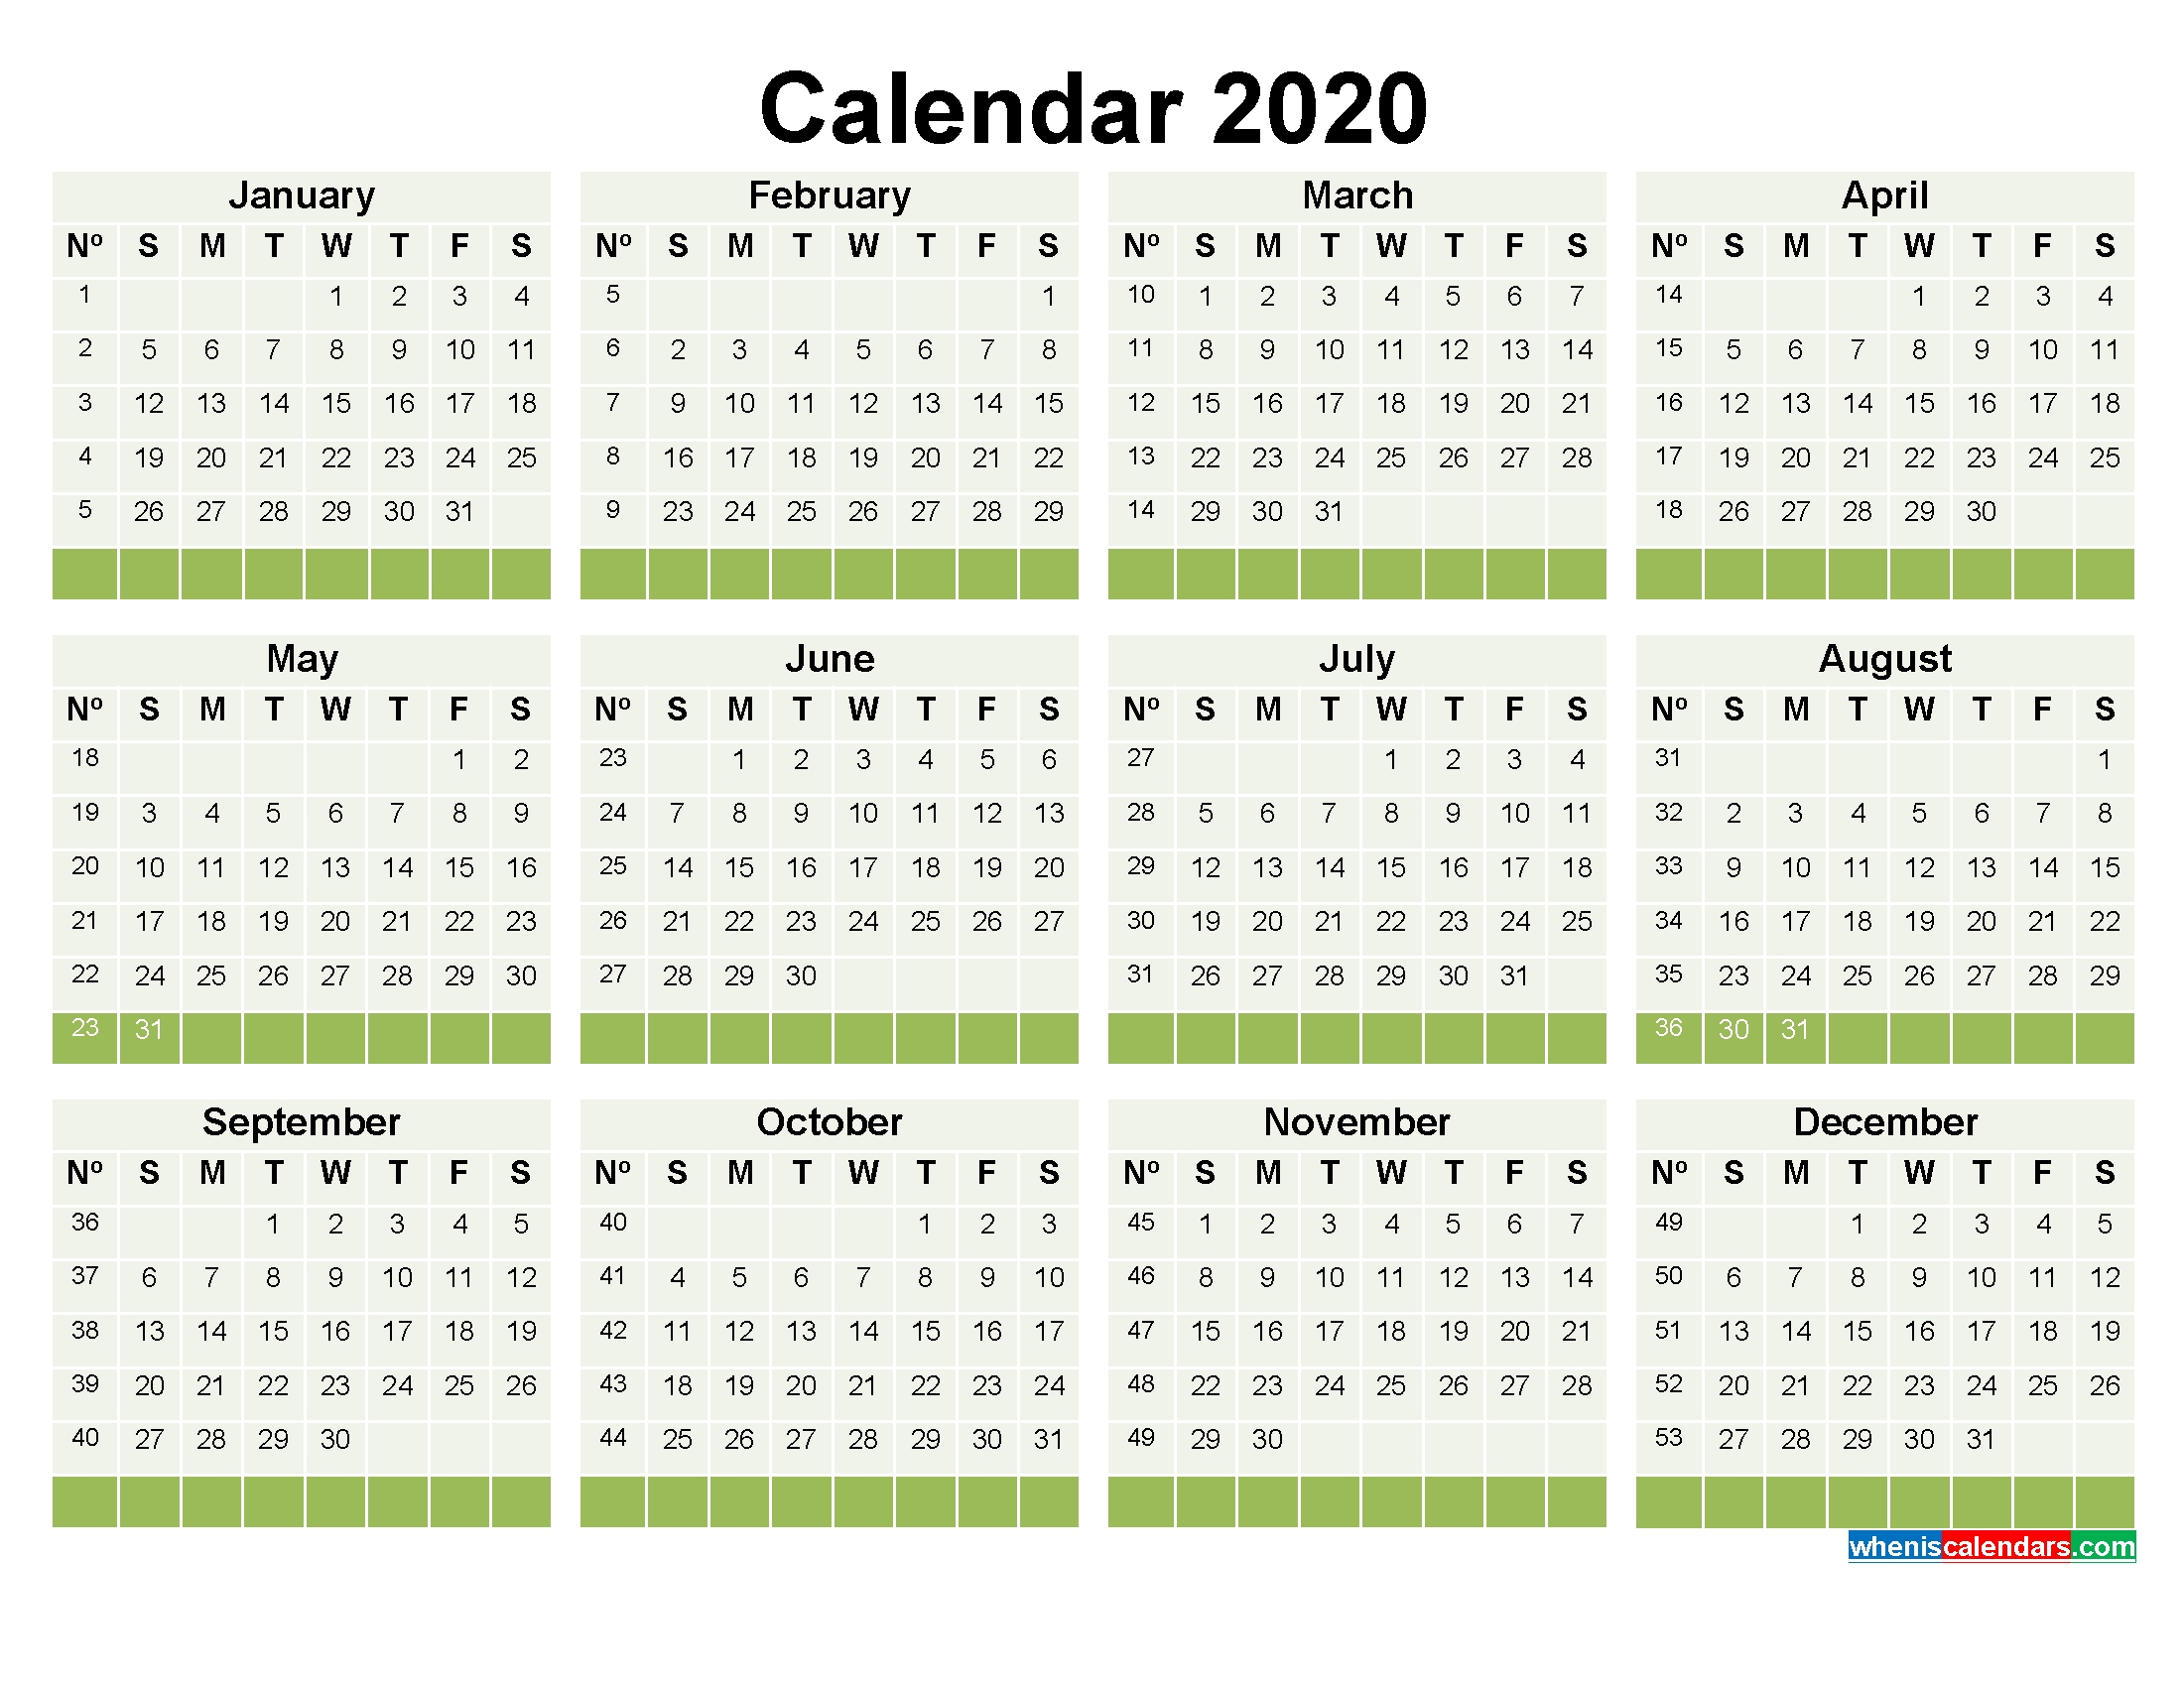 2020 Calendar With Week Numbers Printable Word, Pdf | Free Printable 2020 Monthly Calendar With